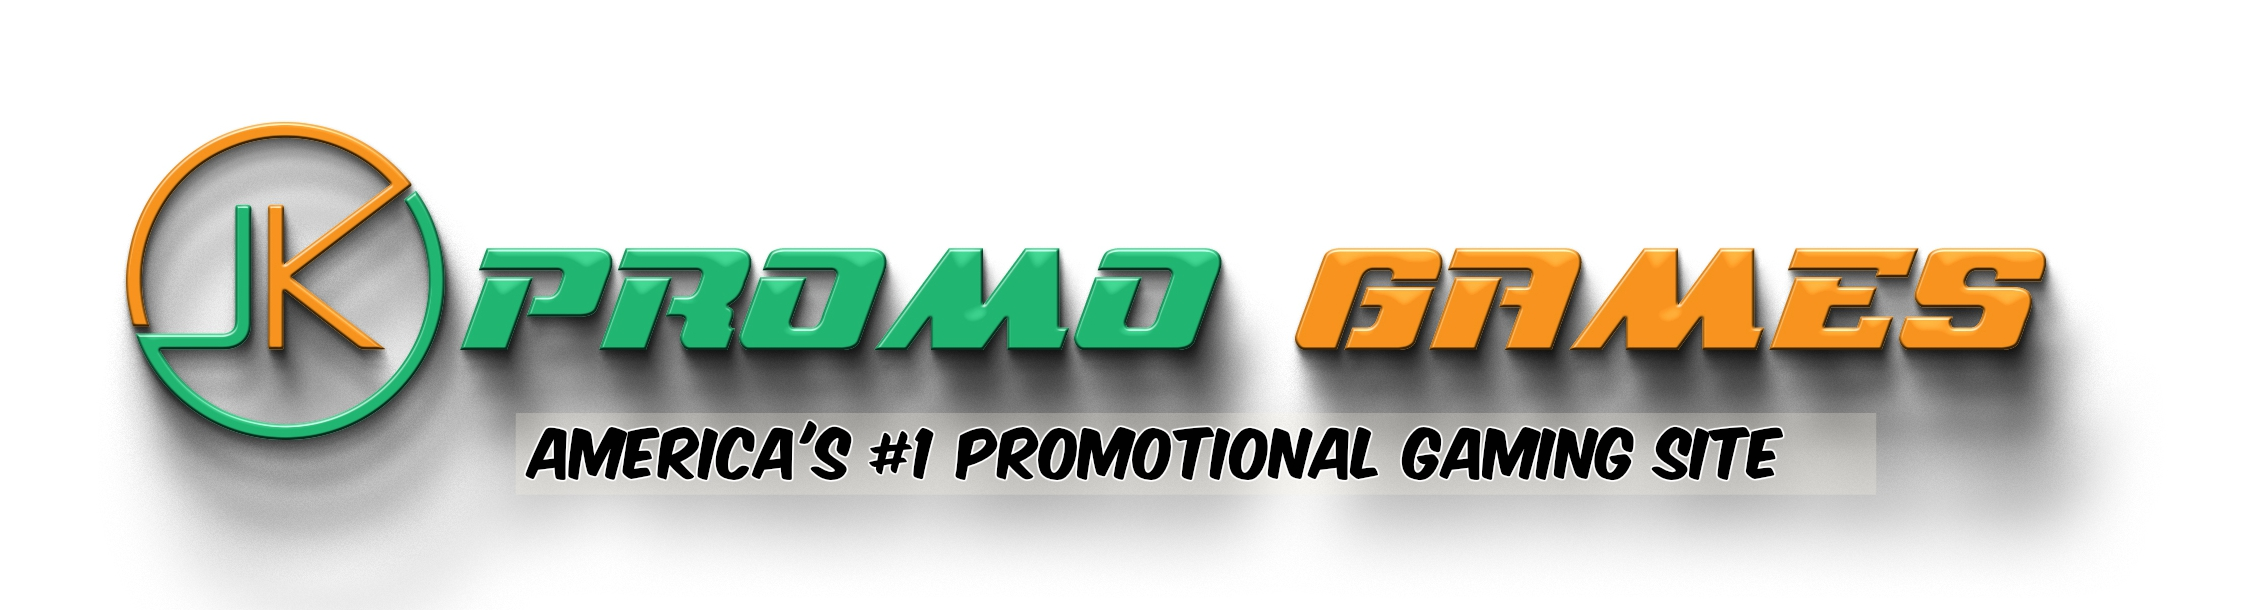 Promotional Games | Enjoy exciting promotional games from home